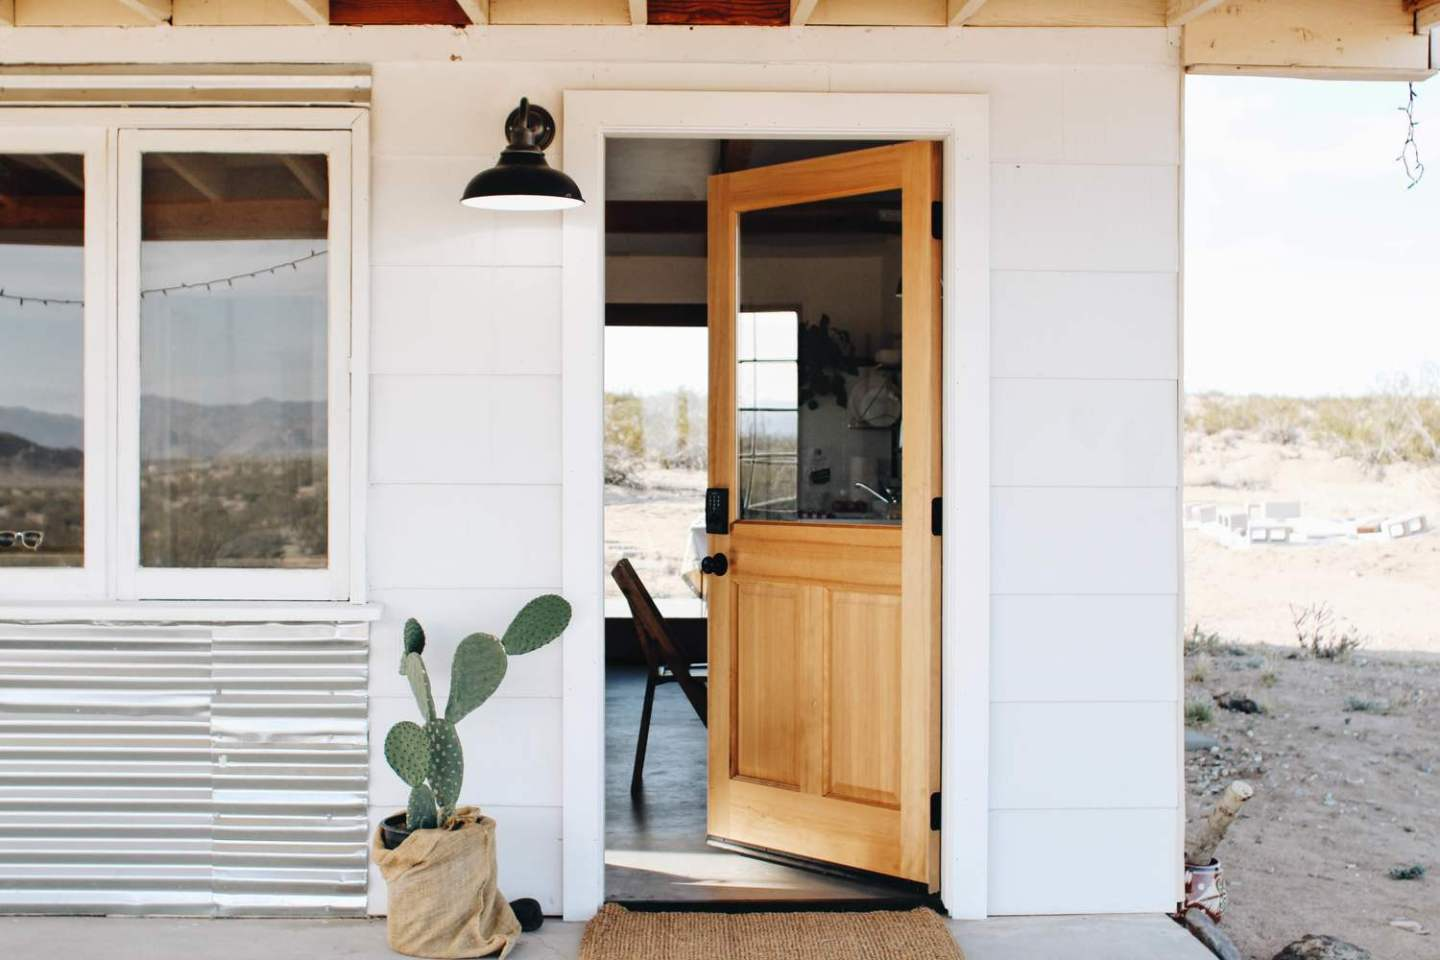 maison_californienne_joshua_tree_kinfolk_9